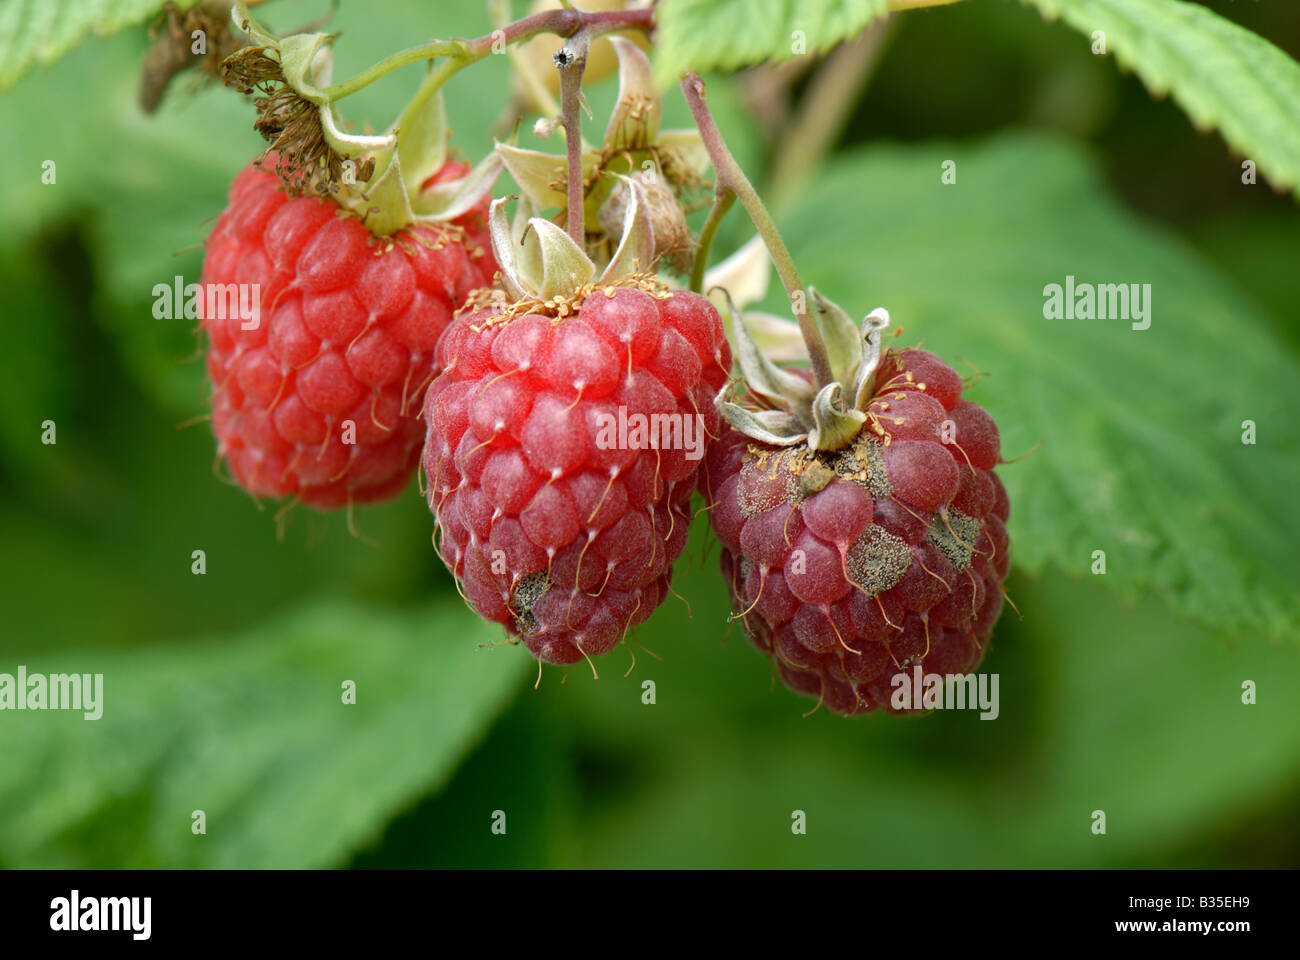 Ripe raspberry fruit affected by grey mould Botrytis cinerea in damp weather - Stock Image